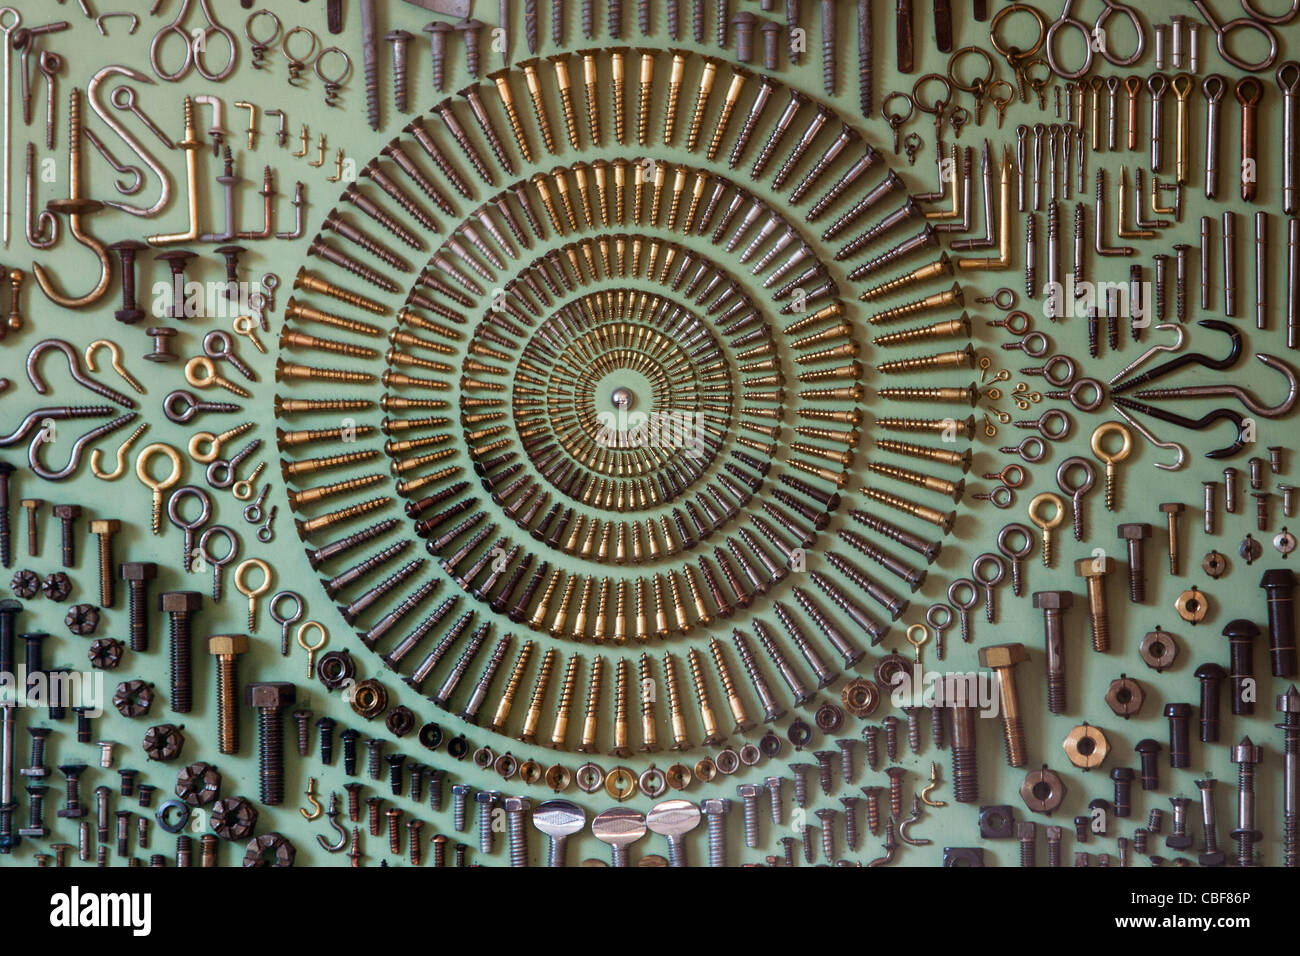 screws hooks eyes rivets nuts and bolts mounted in regular pattern on display board - Stock Image